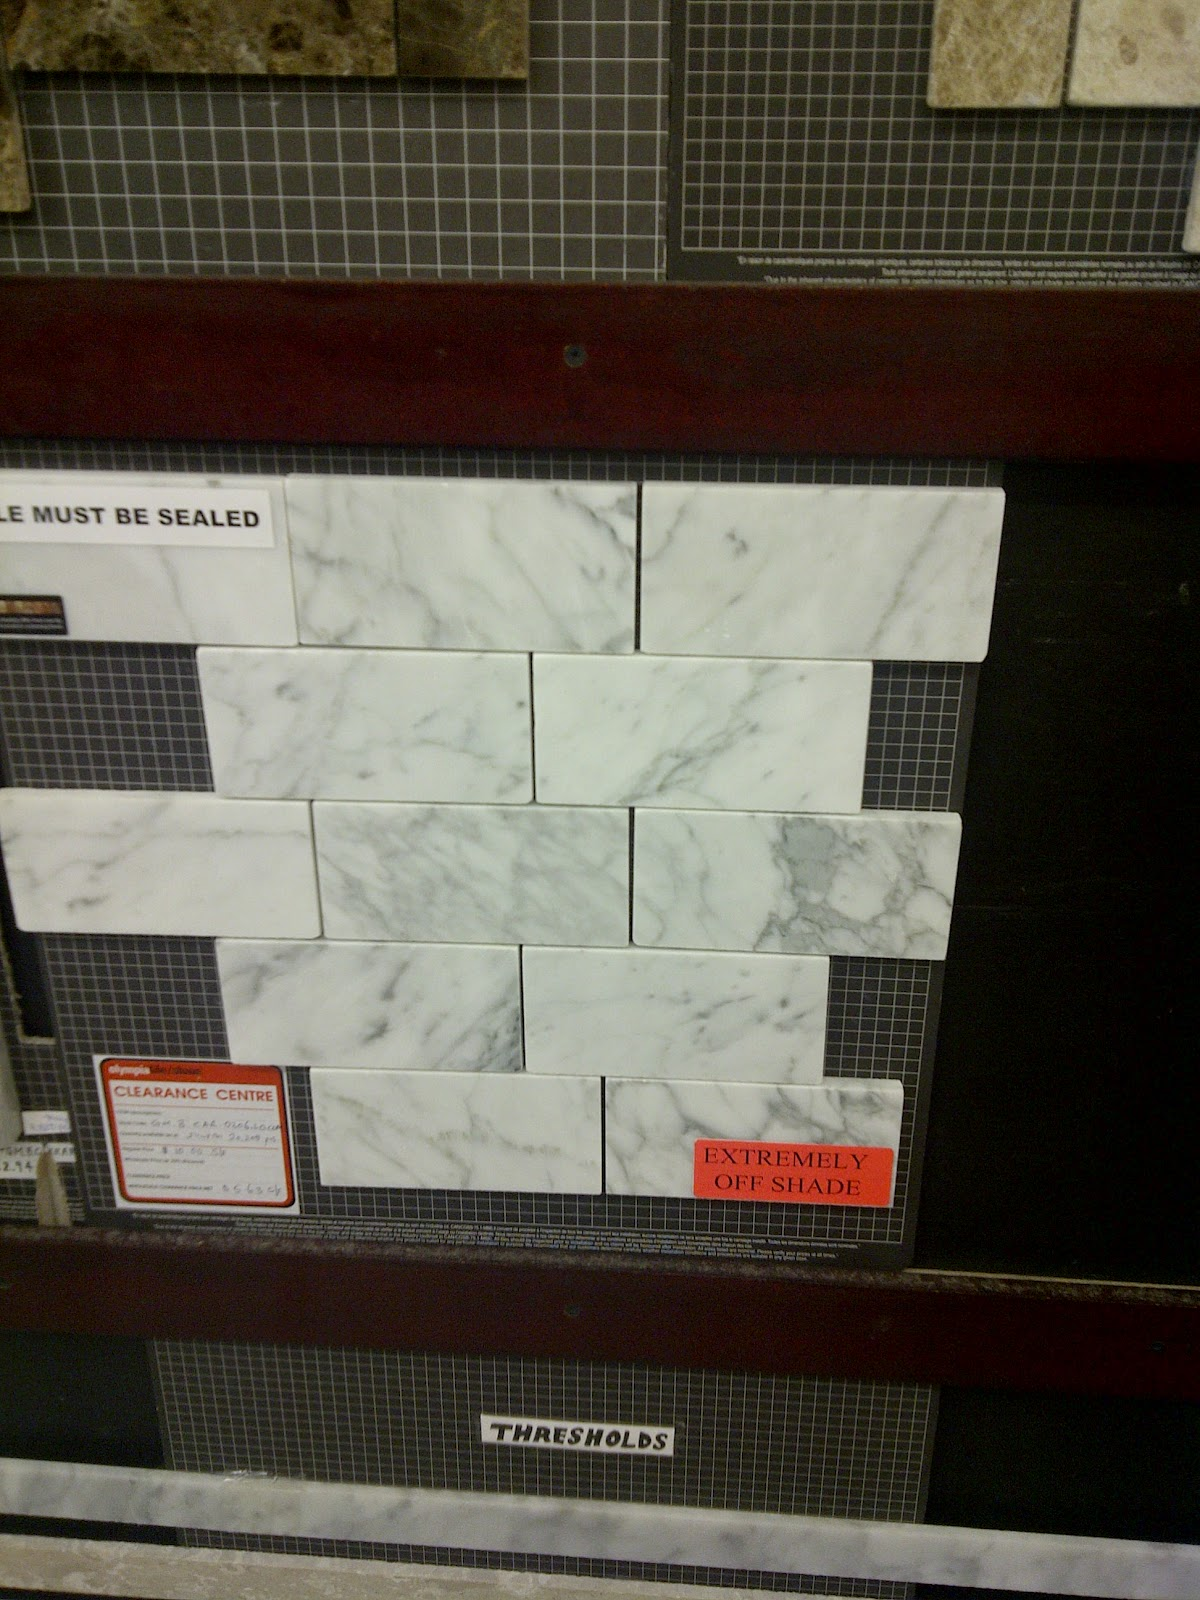 Love this vein y white and grey tile  I found this in the discount centre   It is  5 63 per sq foot  but that  extremely off shade  warning scares me. Waffling  The Great Canadian Tile Hunt